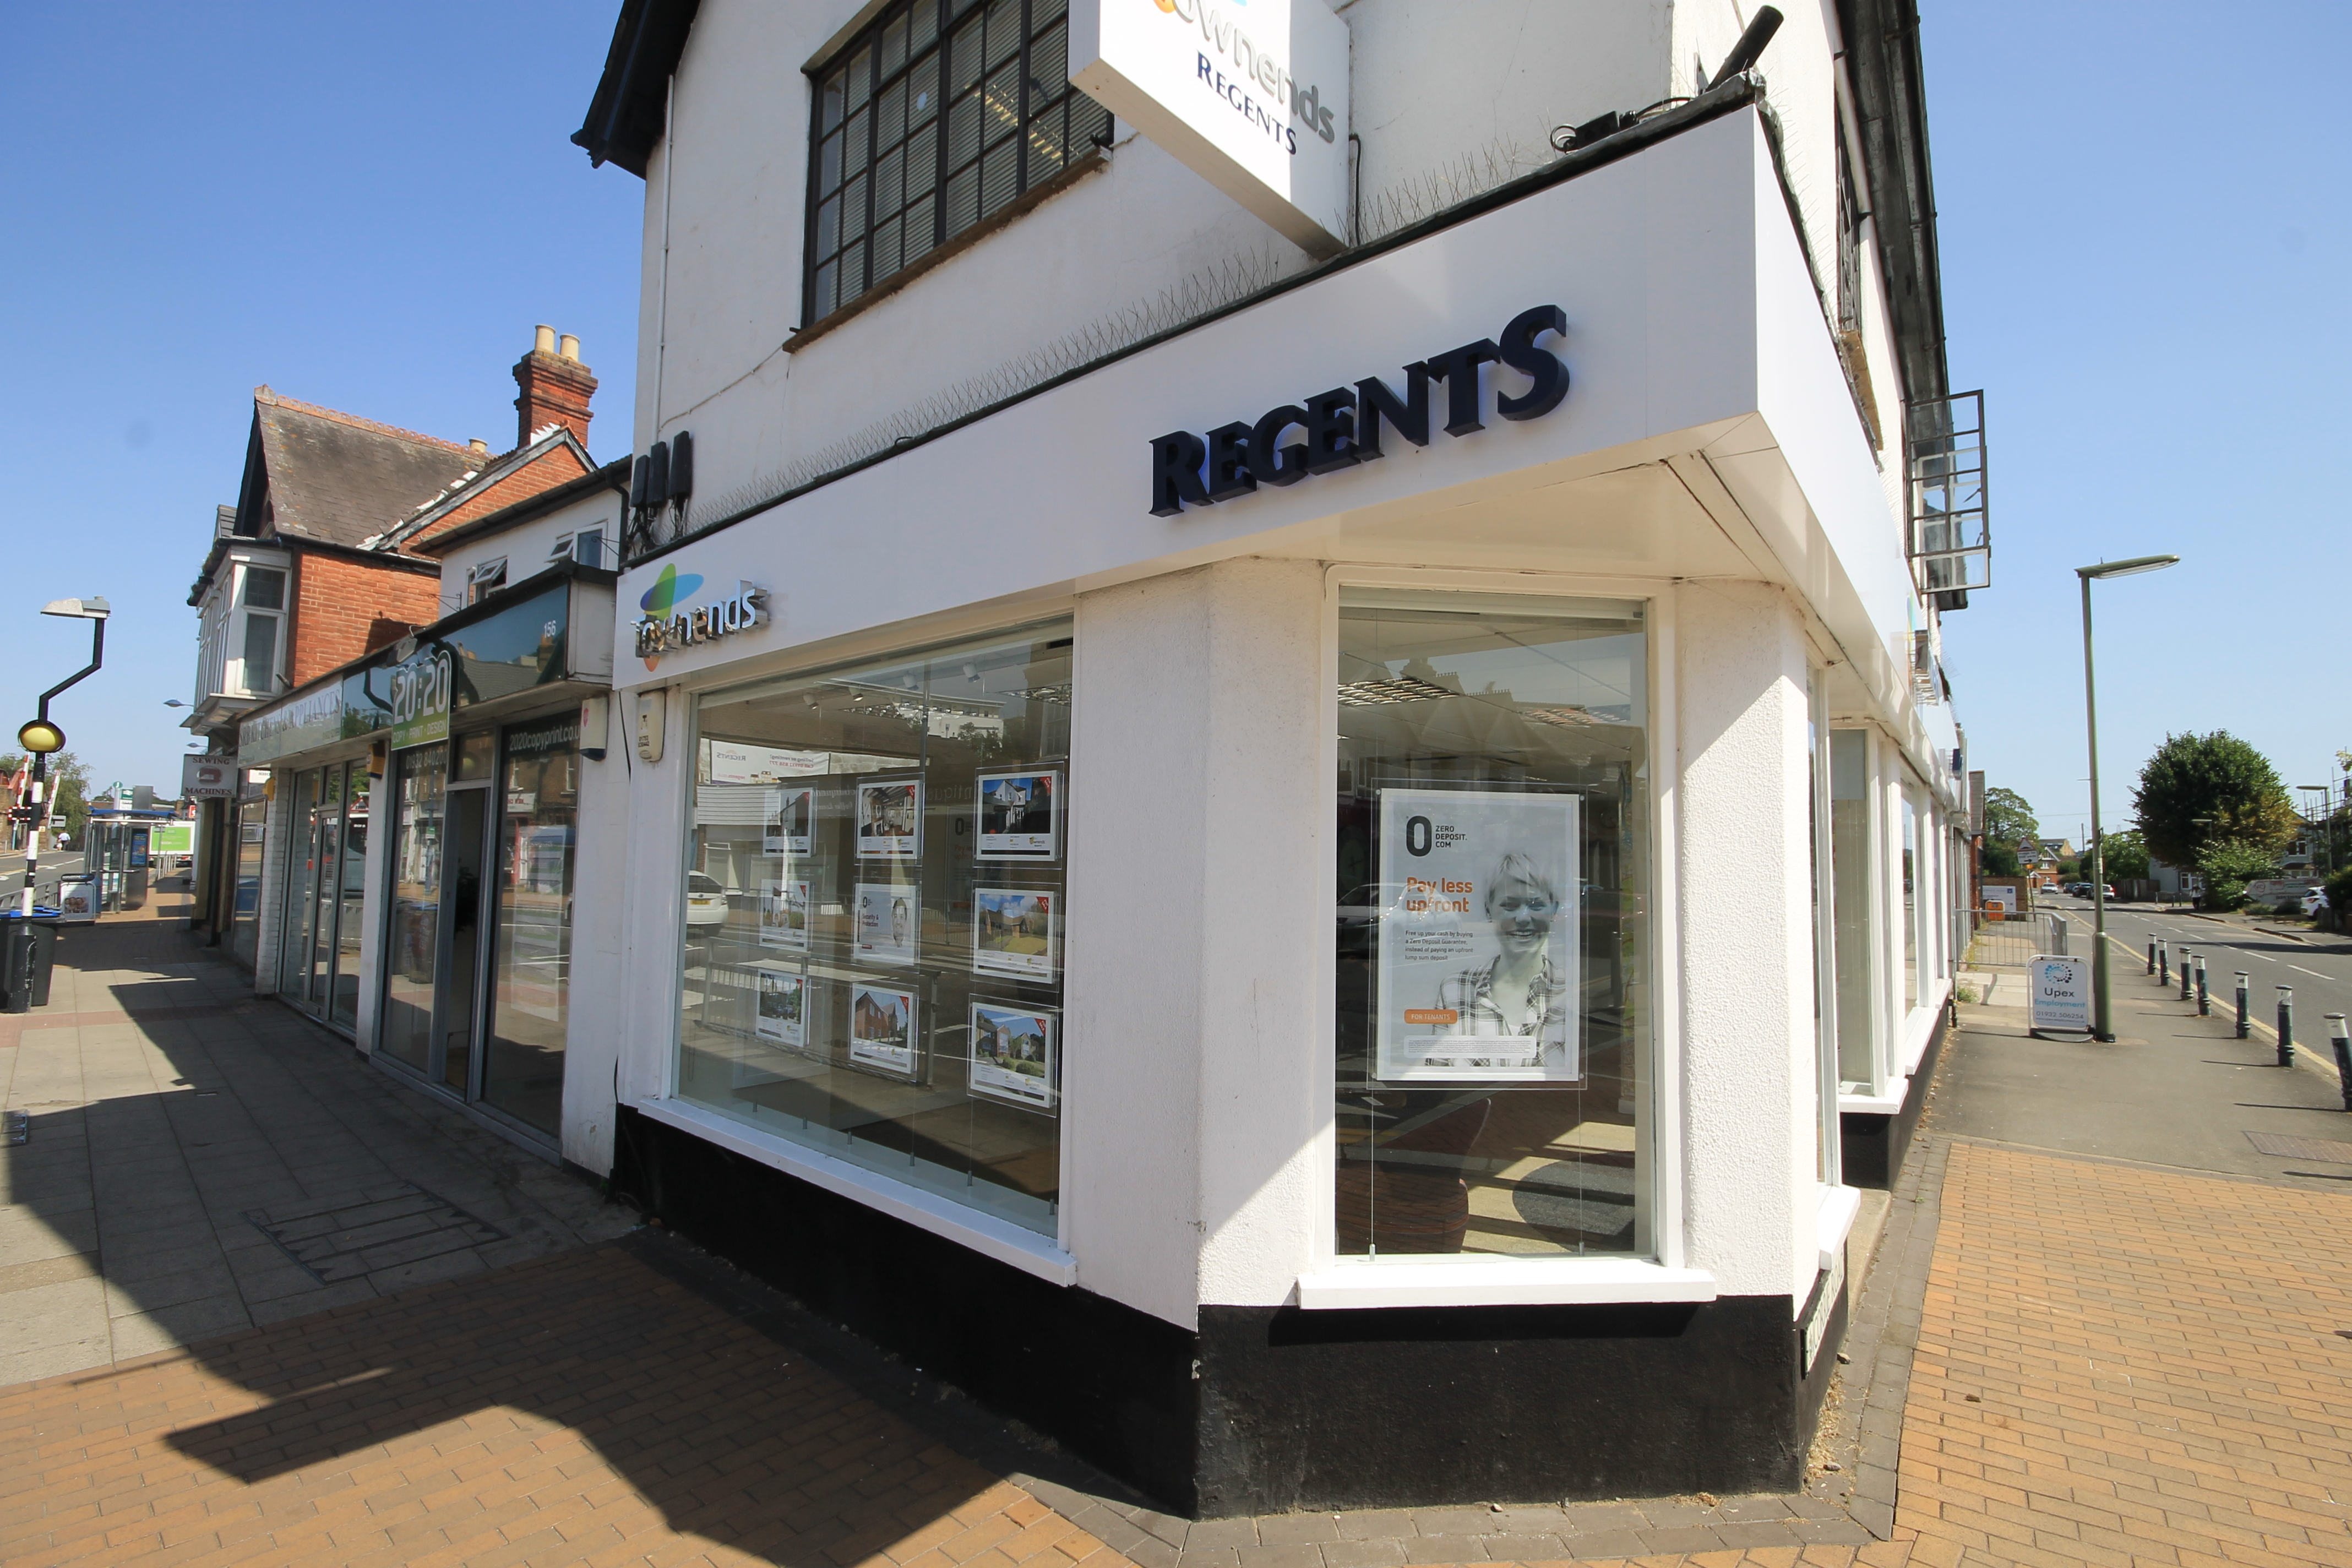 Townends Regents Estate Agents - Addlestone, Surrey KT15 2BD - 01932 504431 | ShowMeLocal.com